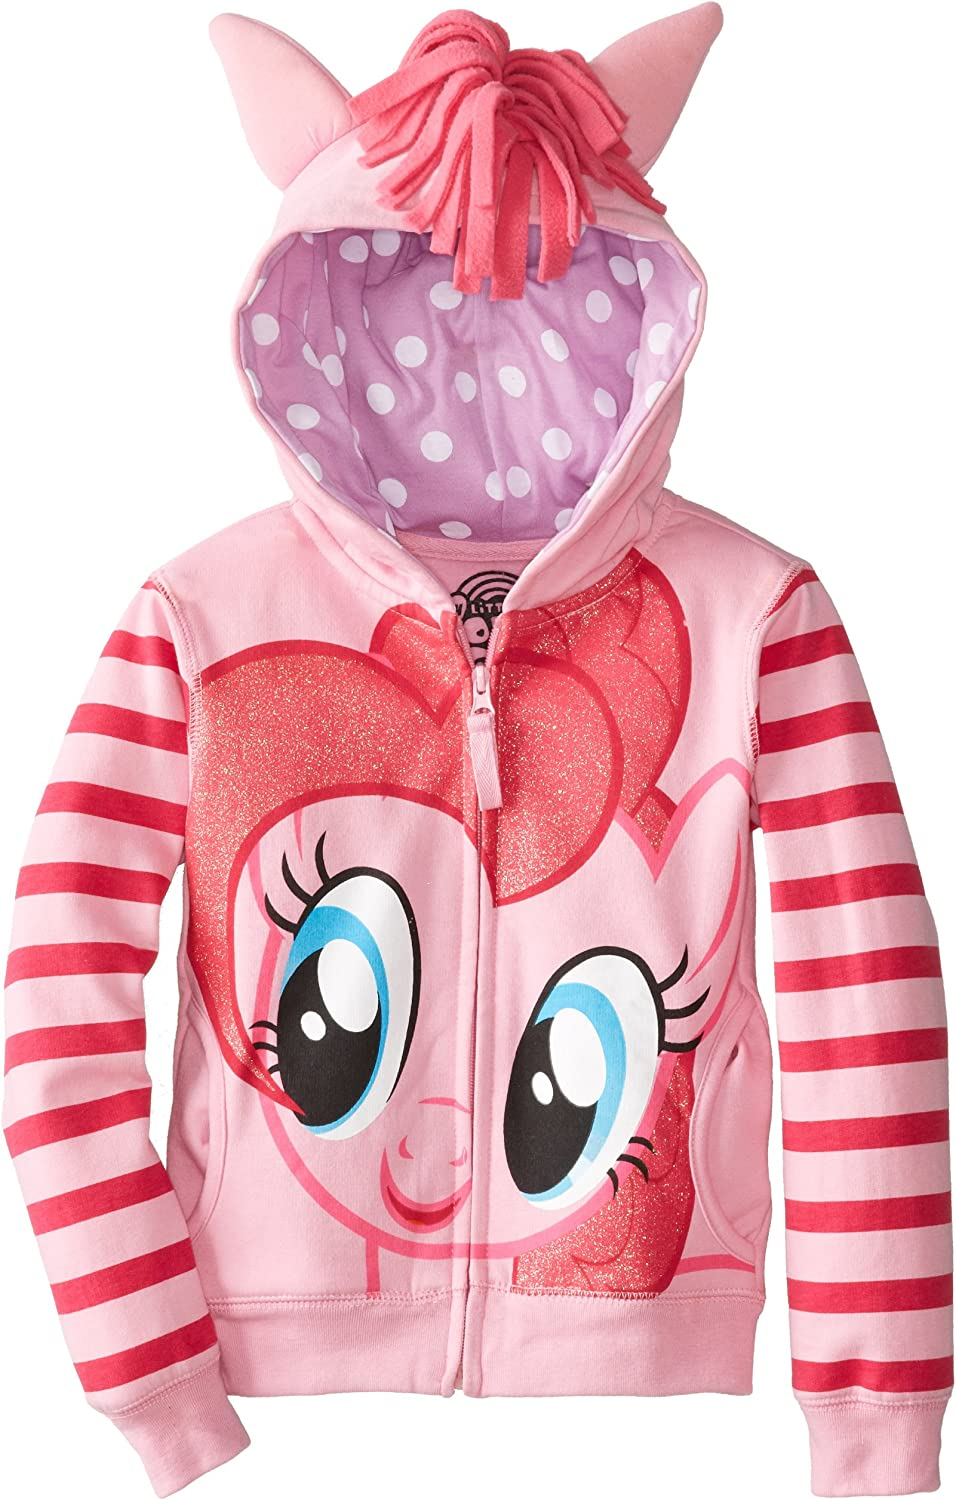 Baby Girls My Little Pony Wings Zip Up Hoodie Jackets Sweatshirt Winter Coat Top